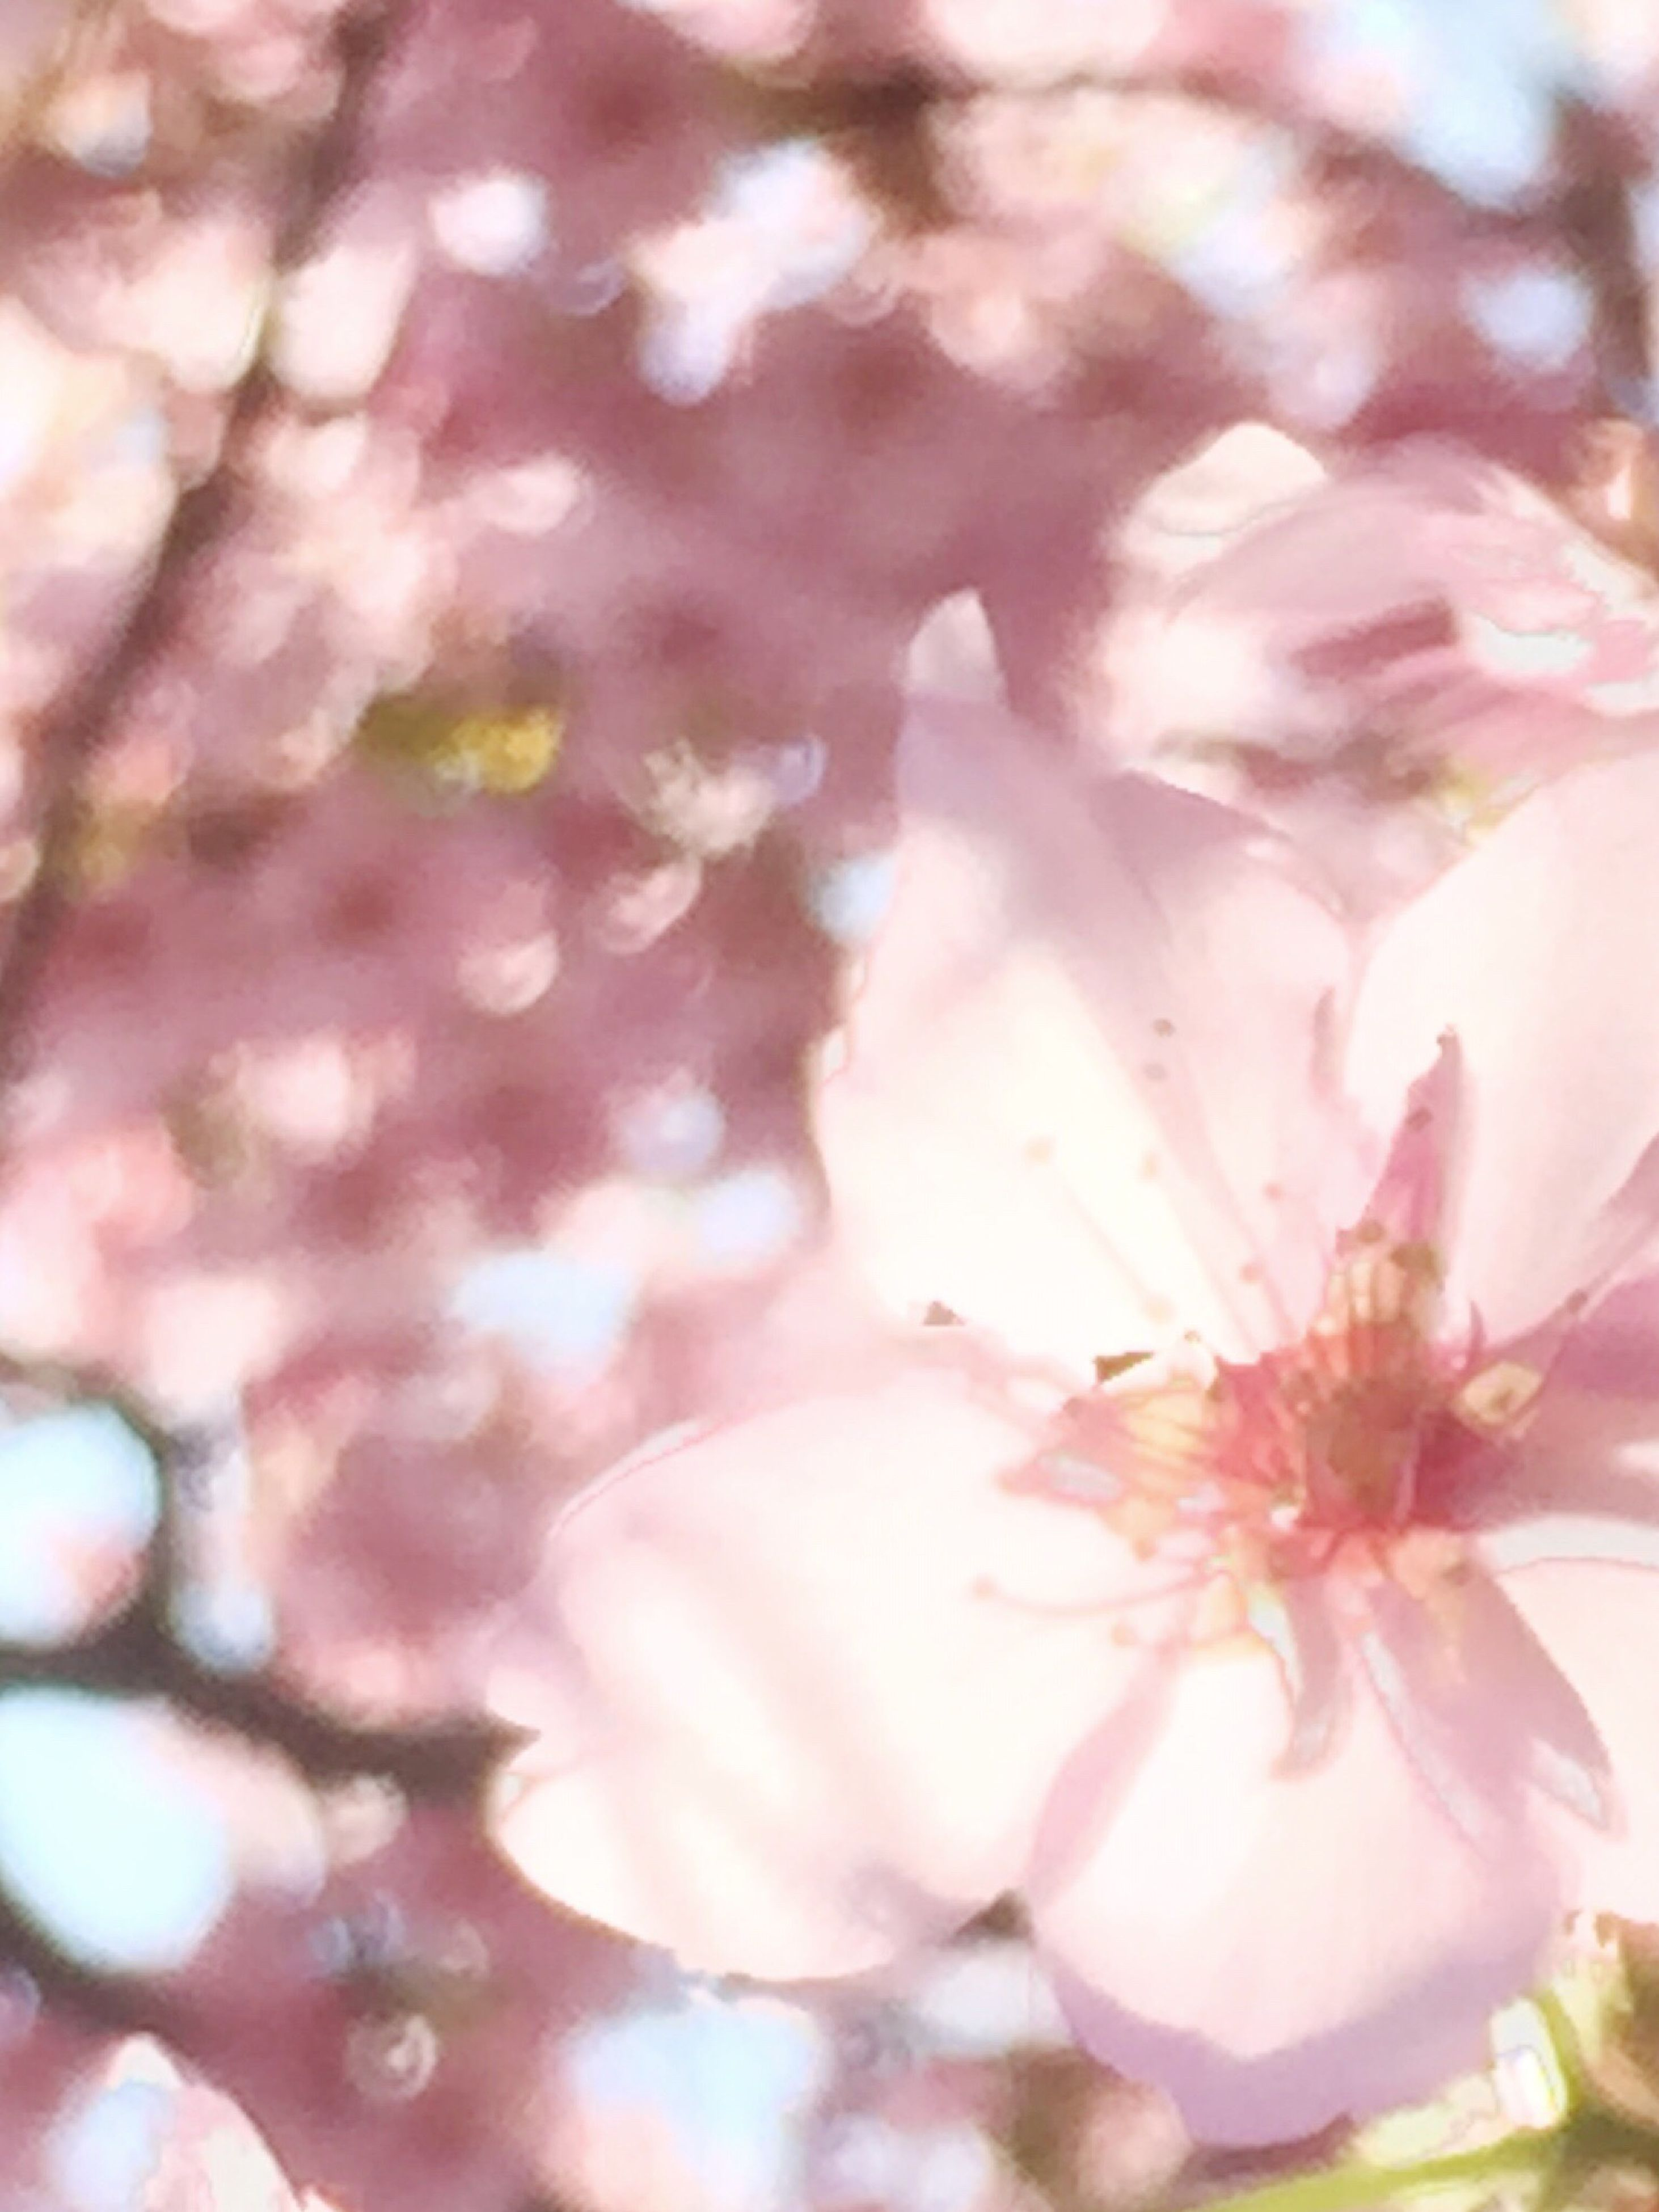 flower, freshness, fragility, petal, pink color, beauty in nature, growth, close-up, nature, flower head, selective focus, focus on foreground, blooming, season, outdoors, water, day, pink, branch, blossom